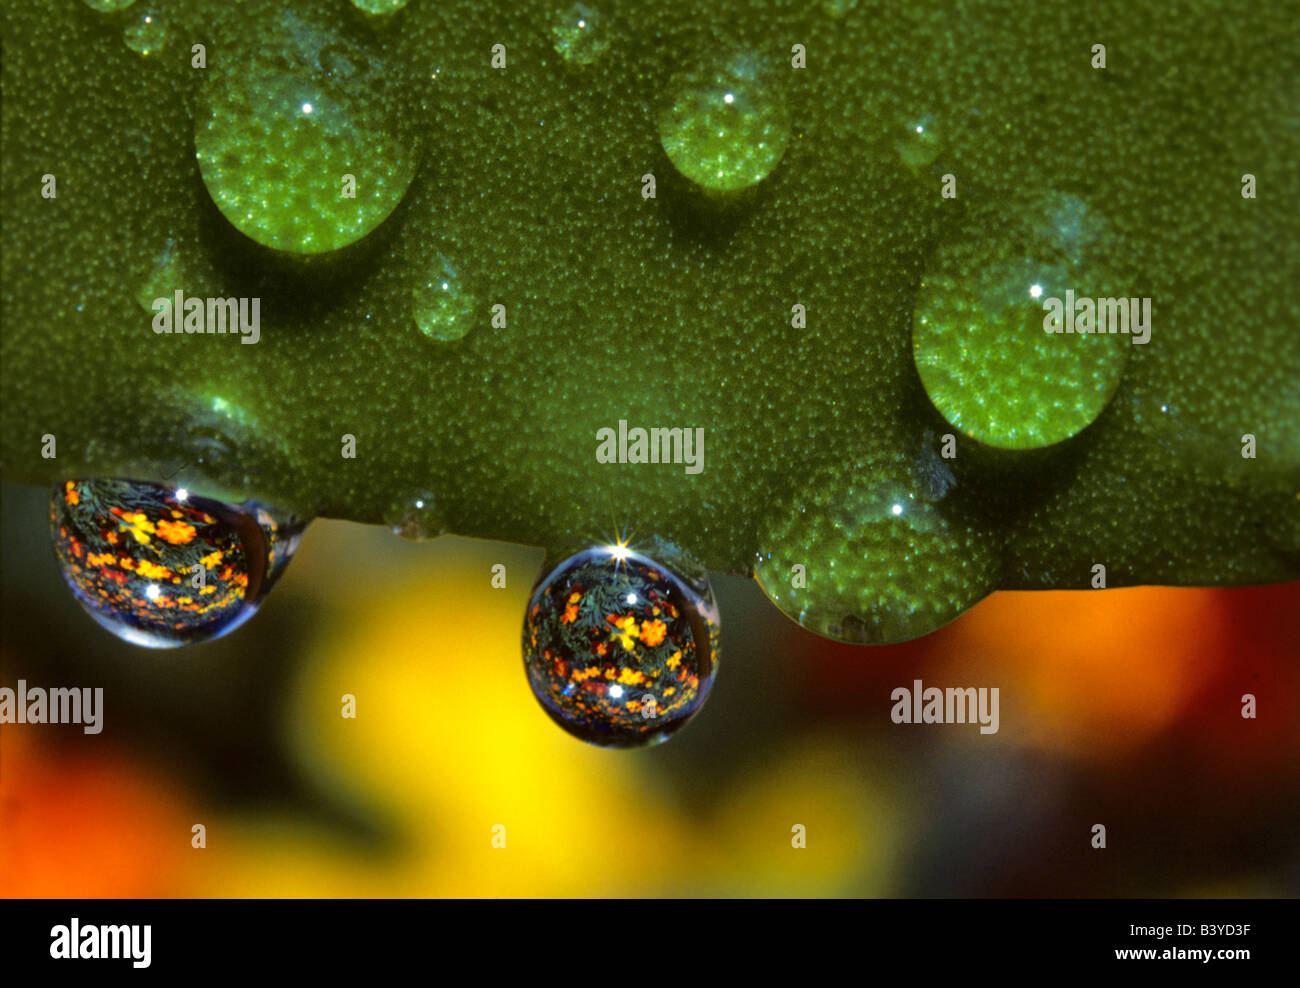 Marigolds reflected through water drops Monroe Oregon - Stock Image